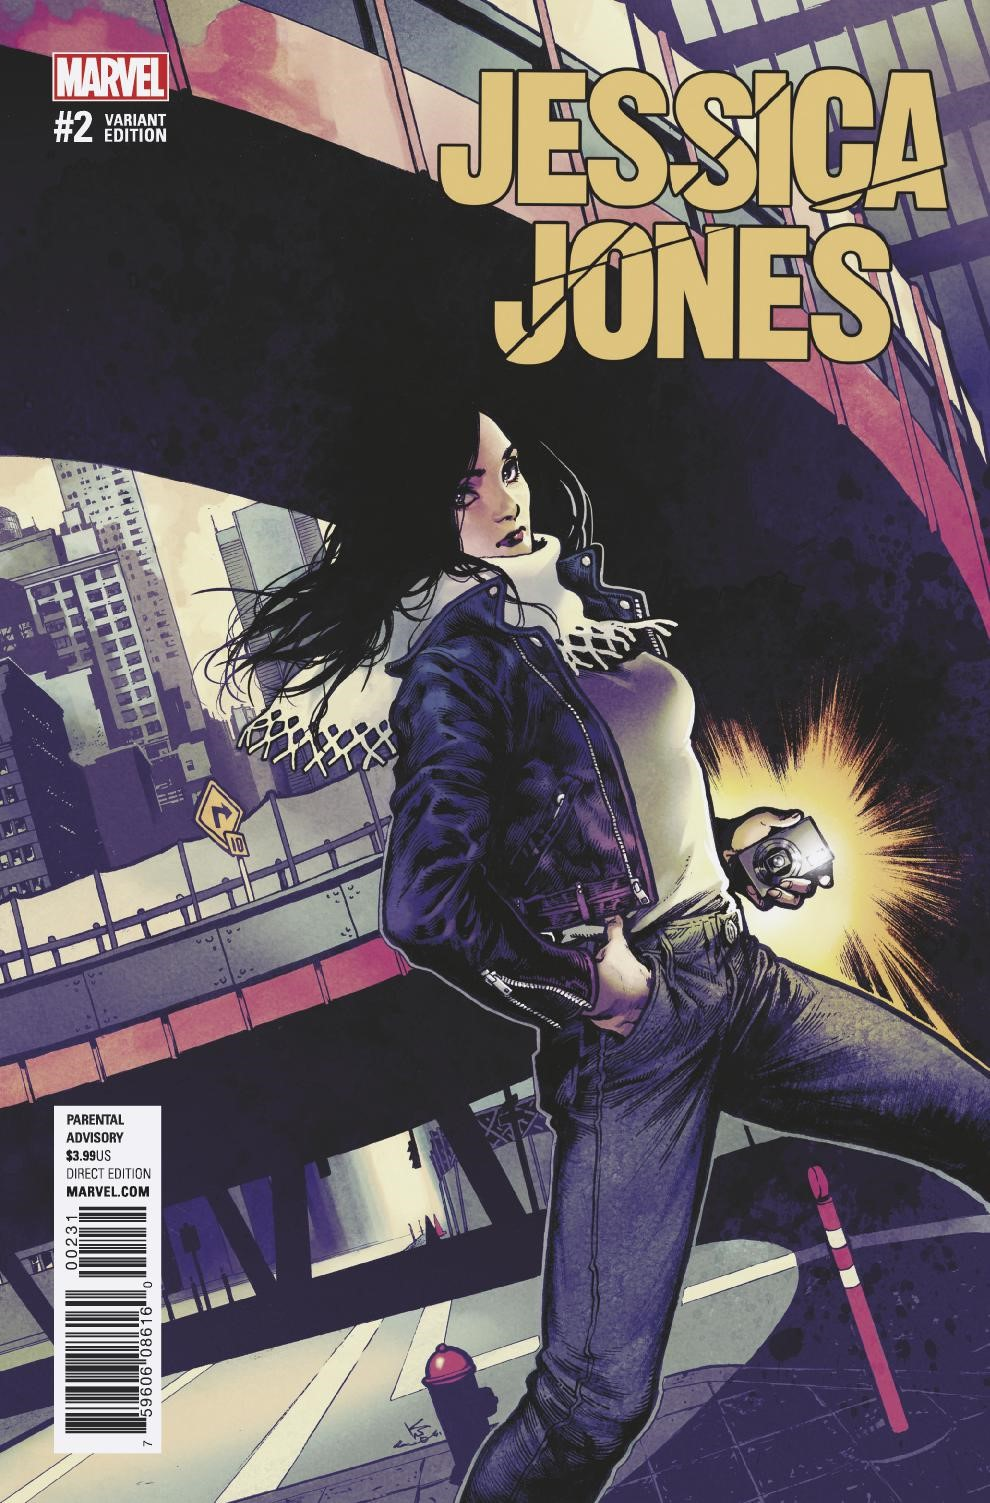 Marvel'S Jessica Jones Besetzung